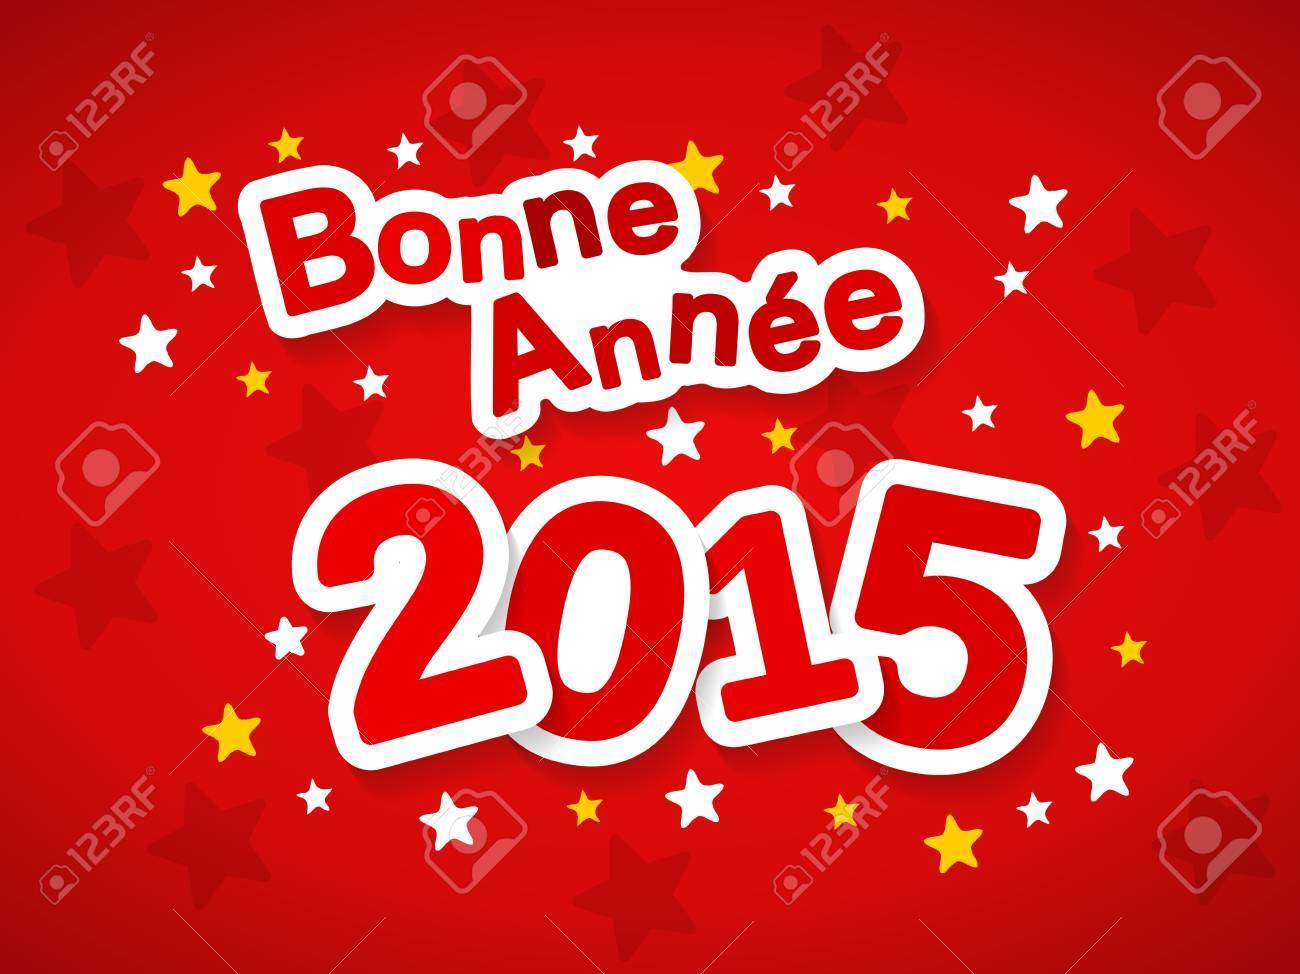 Bonne annee meaning happy new year 2015 greeting in french language bonne annee meaning happy new year 2015 greeting in french language stock vector 29631194 m4hsunfo